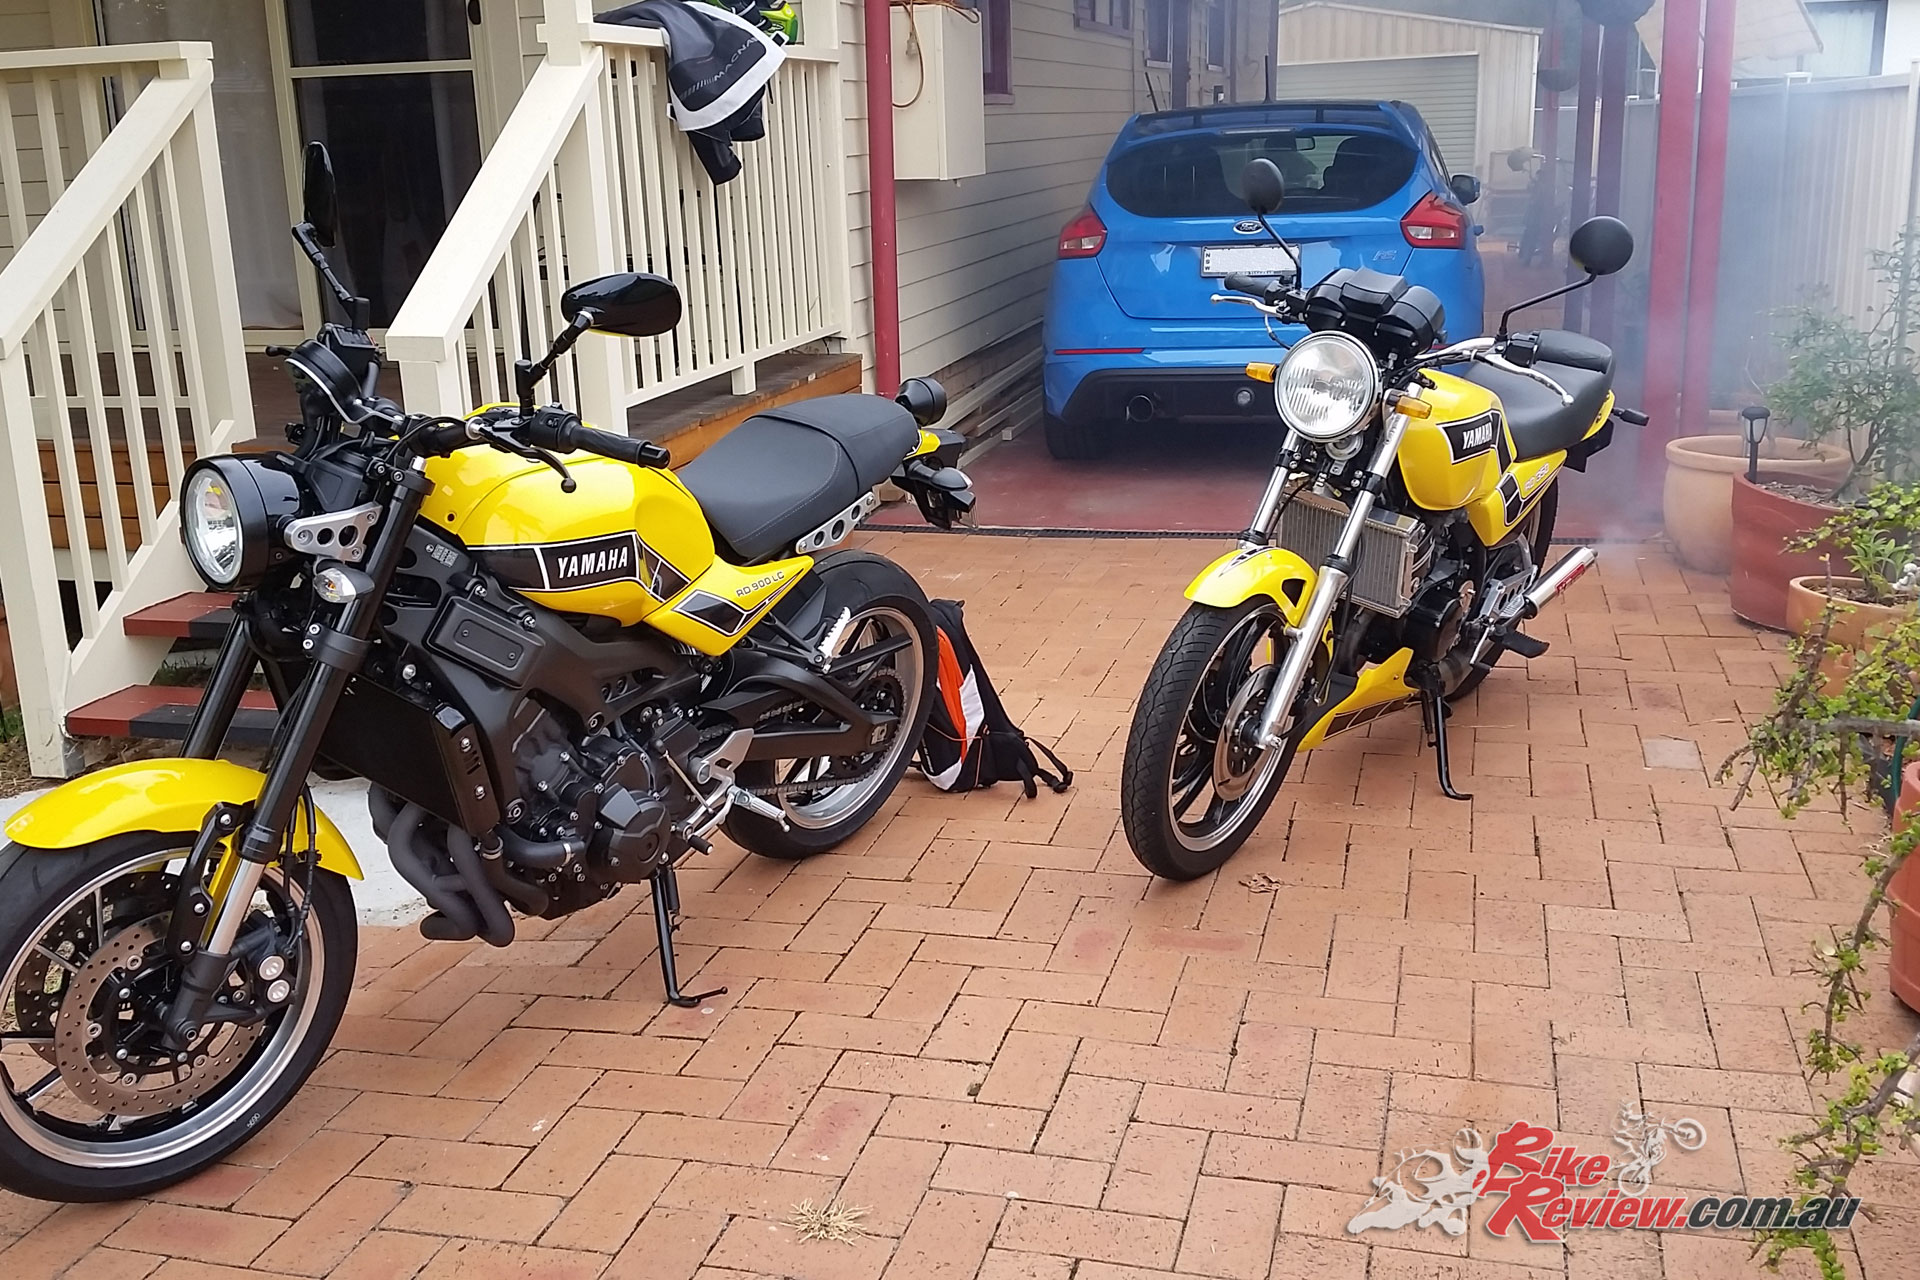 As a classic two-stroke owner, they aren't the most practical option, in particular for an everyday ride!